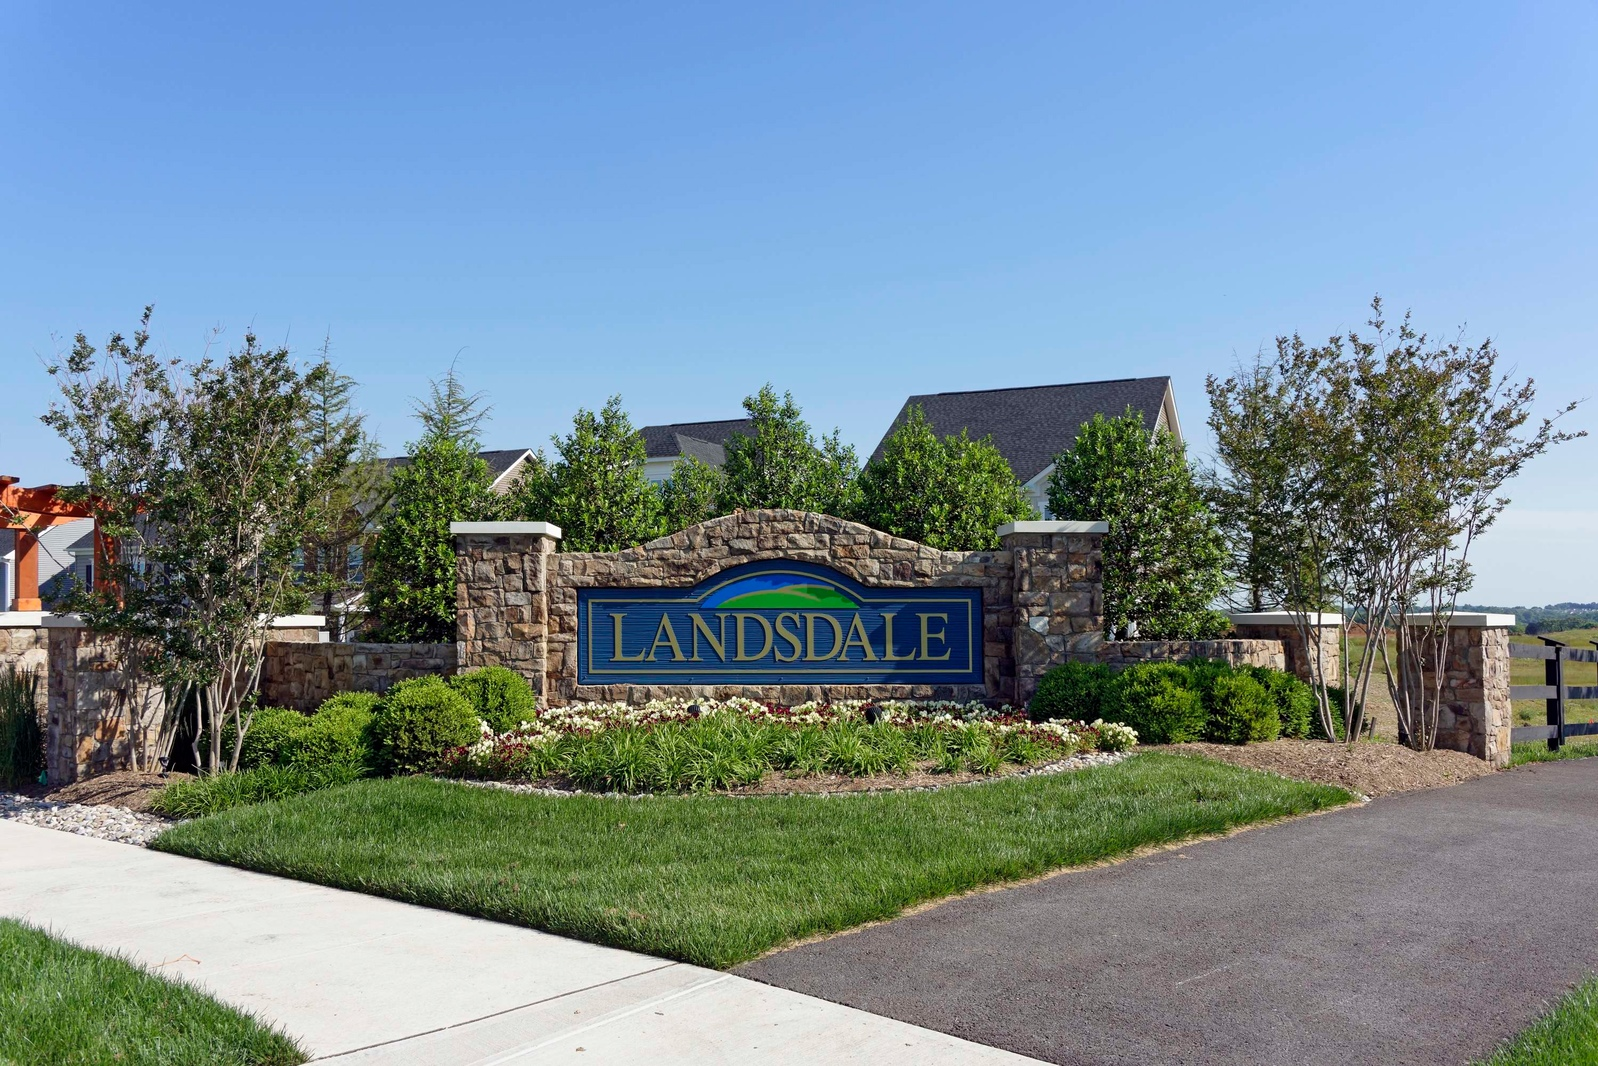 Landsdale offers plenty of recreation for everyone - and the amenities are already built!